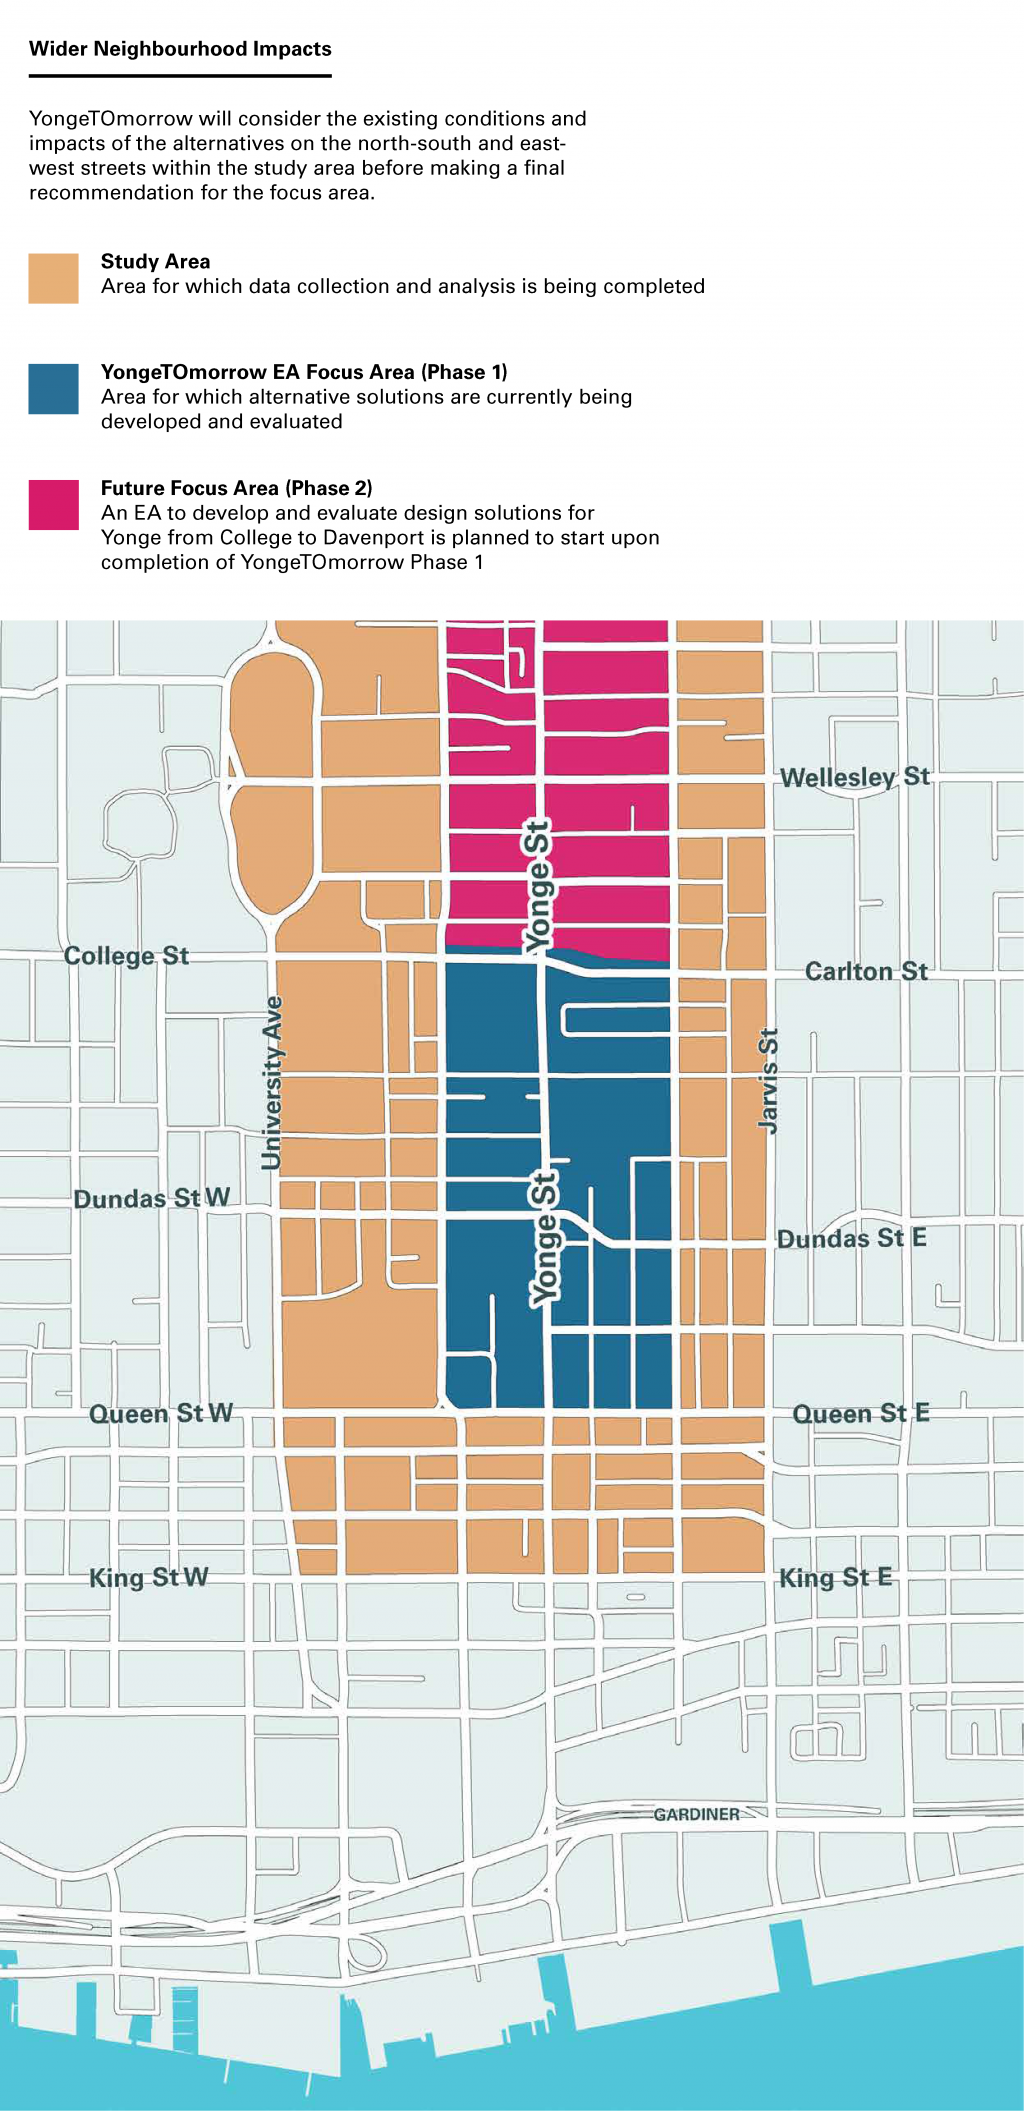 Study area boundaries are Roxborough Street West, Mount Pleasant Road/Jarvis Street, King Street and University Avenue. Phase 1 boundaries are College/Carlton Street, Church Street, Queen Street and Bay Street. Phase 2 boundaries are Davenport Avenue, College Street, Church Street and Bay Street.